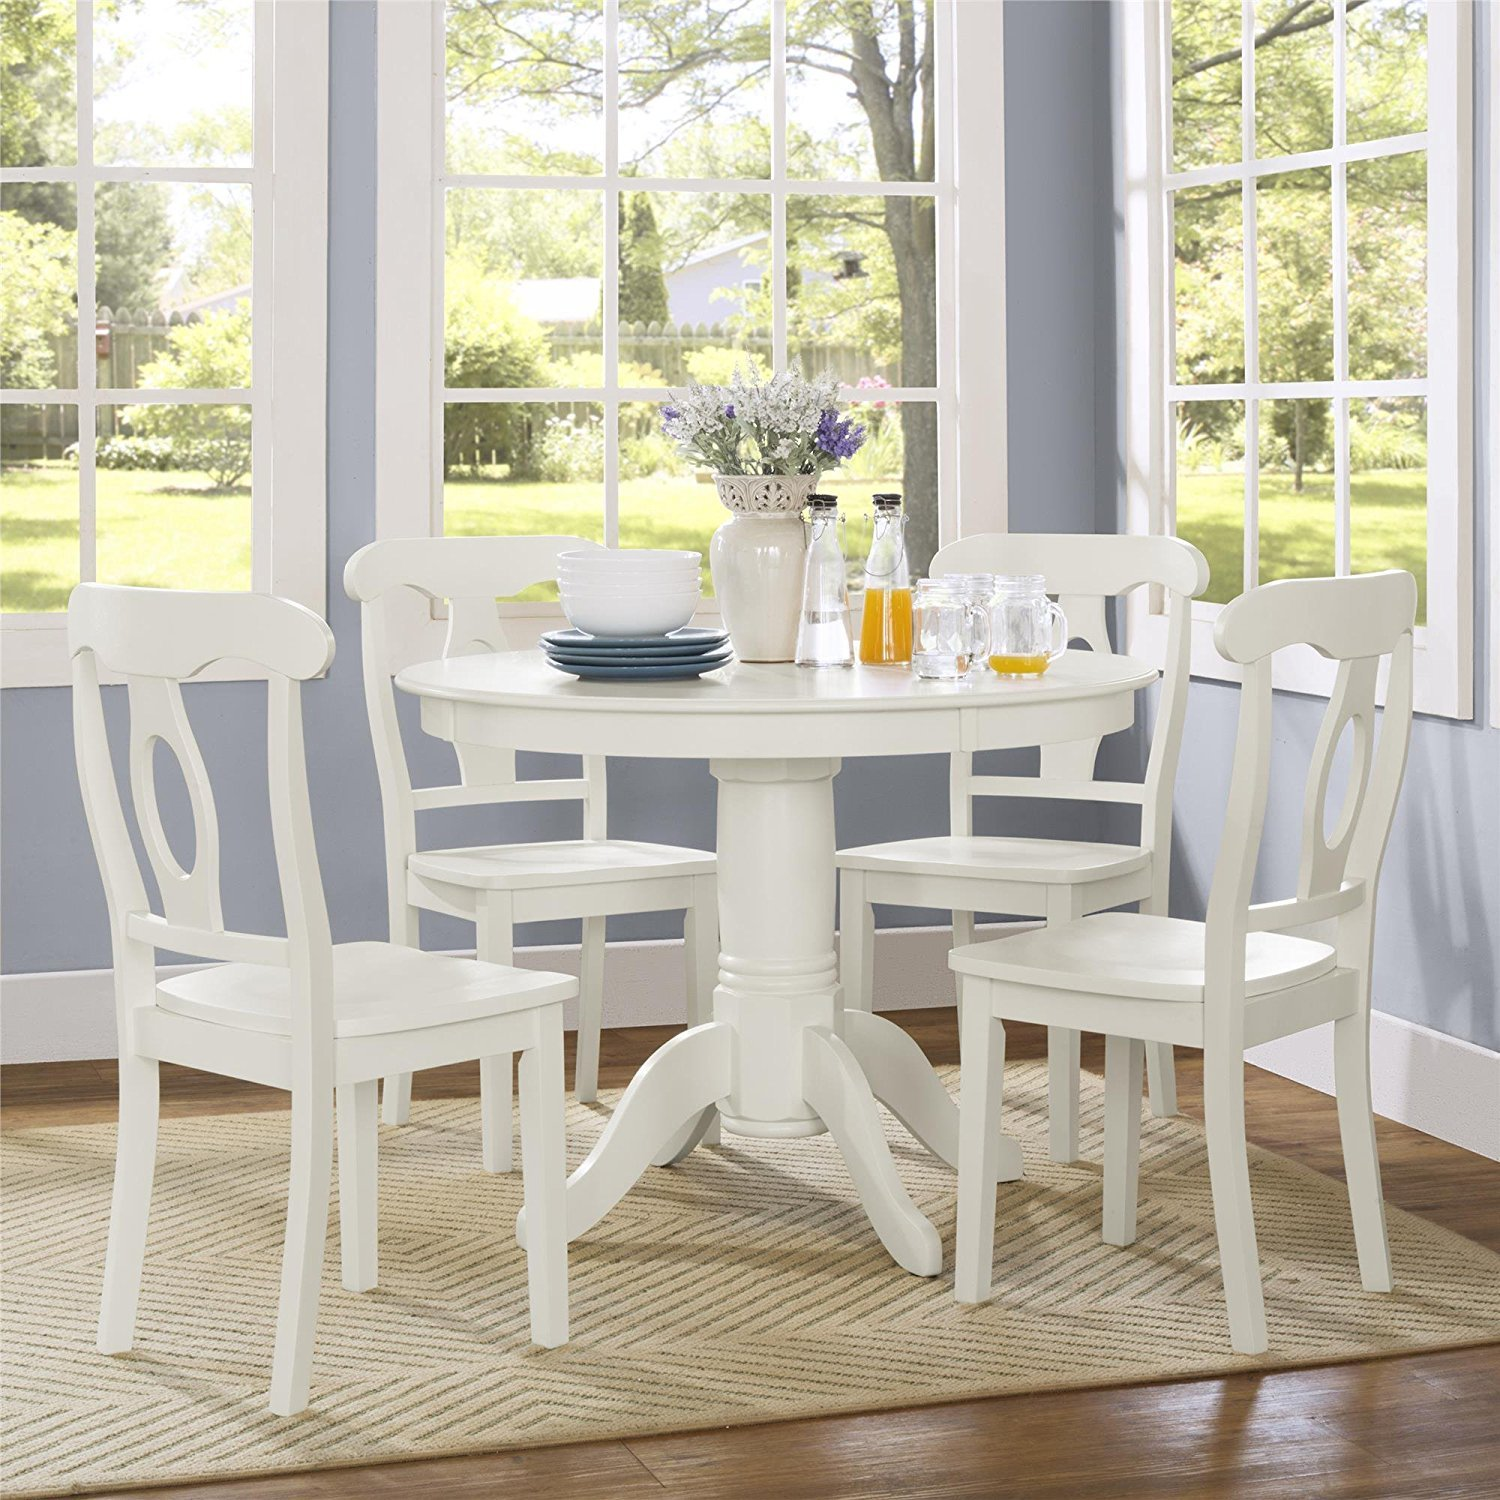 Aubrey 5 piece Traditional Height Pedestal Dining Set, White by Dorel Living (Image #2)